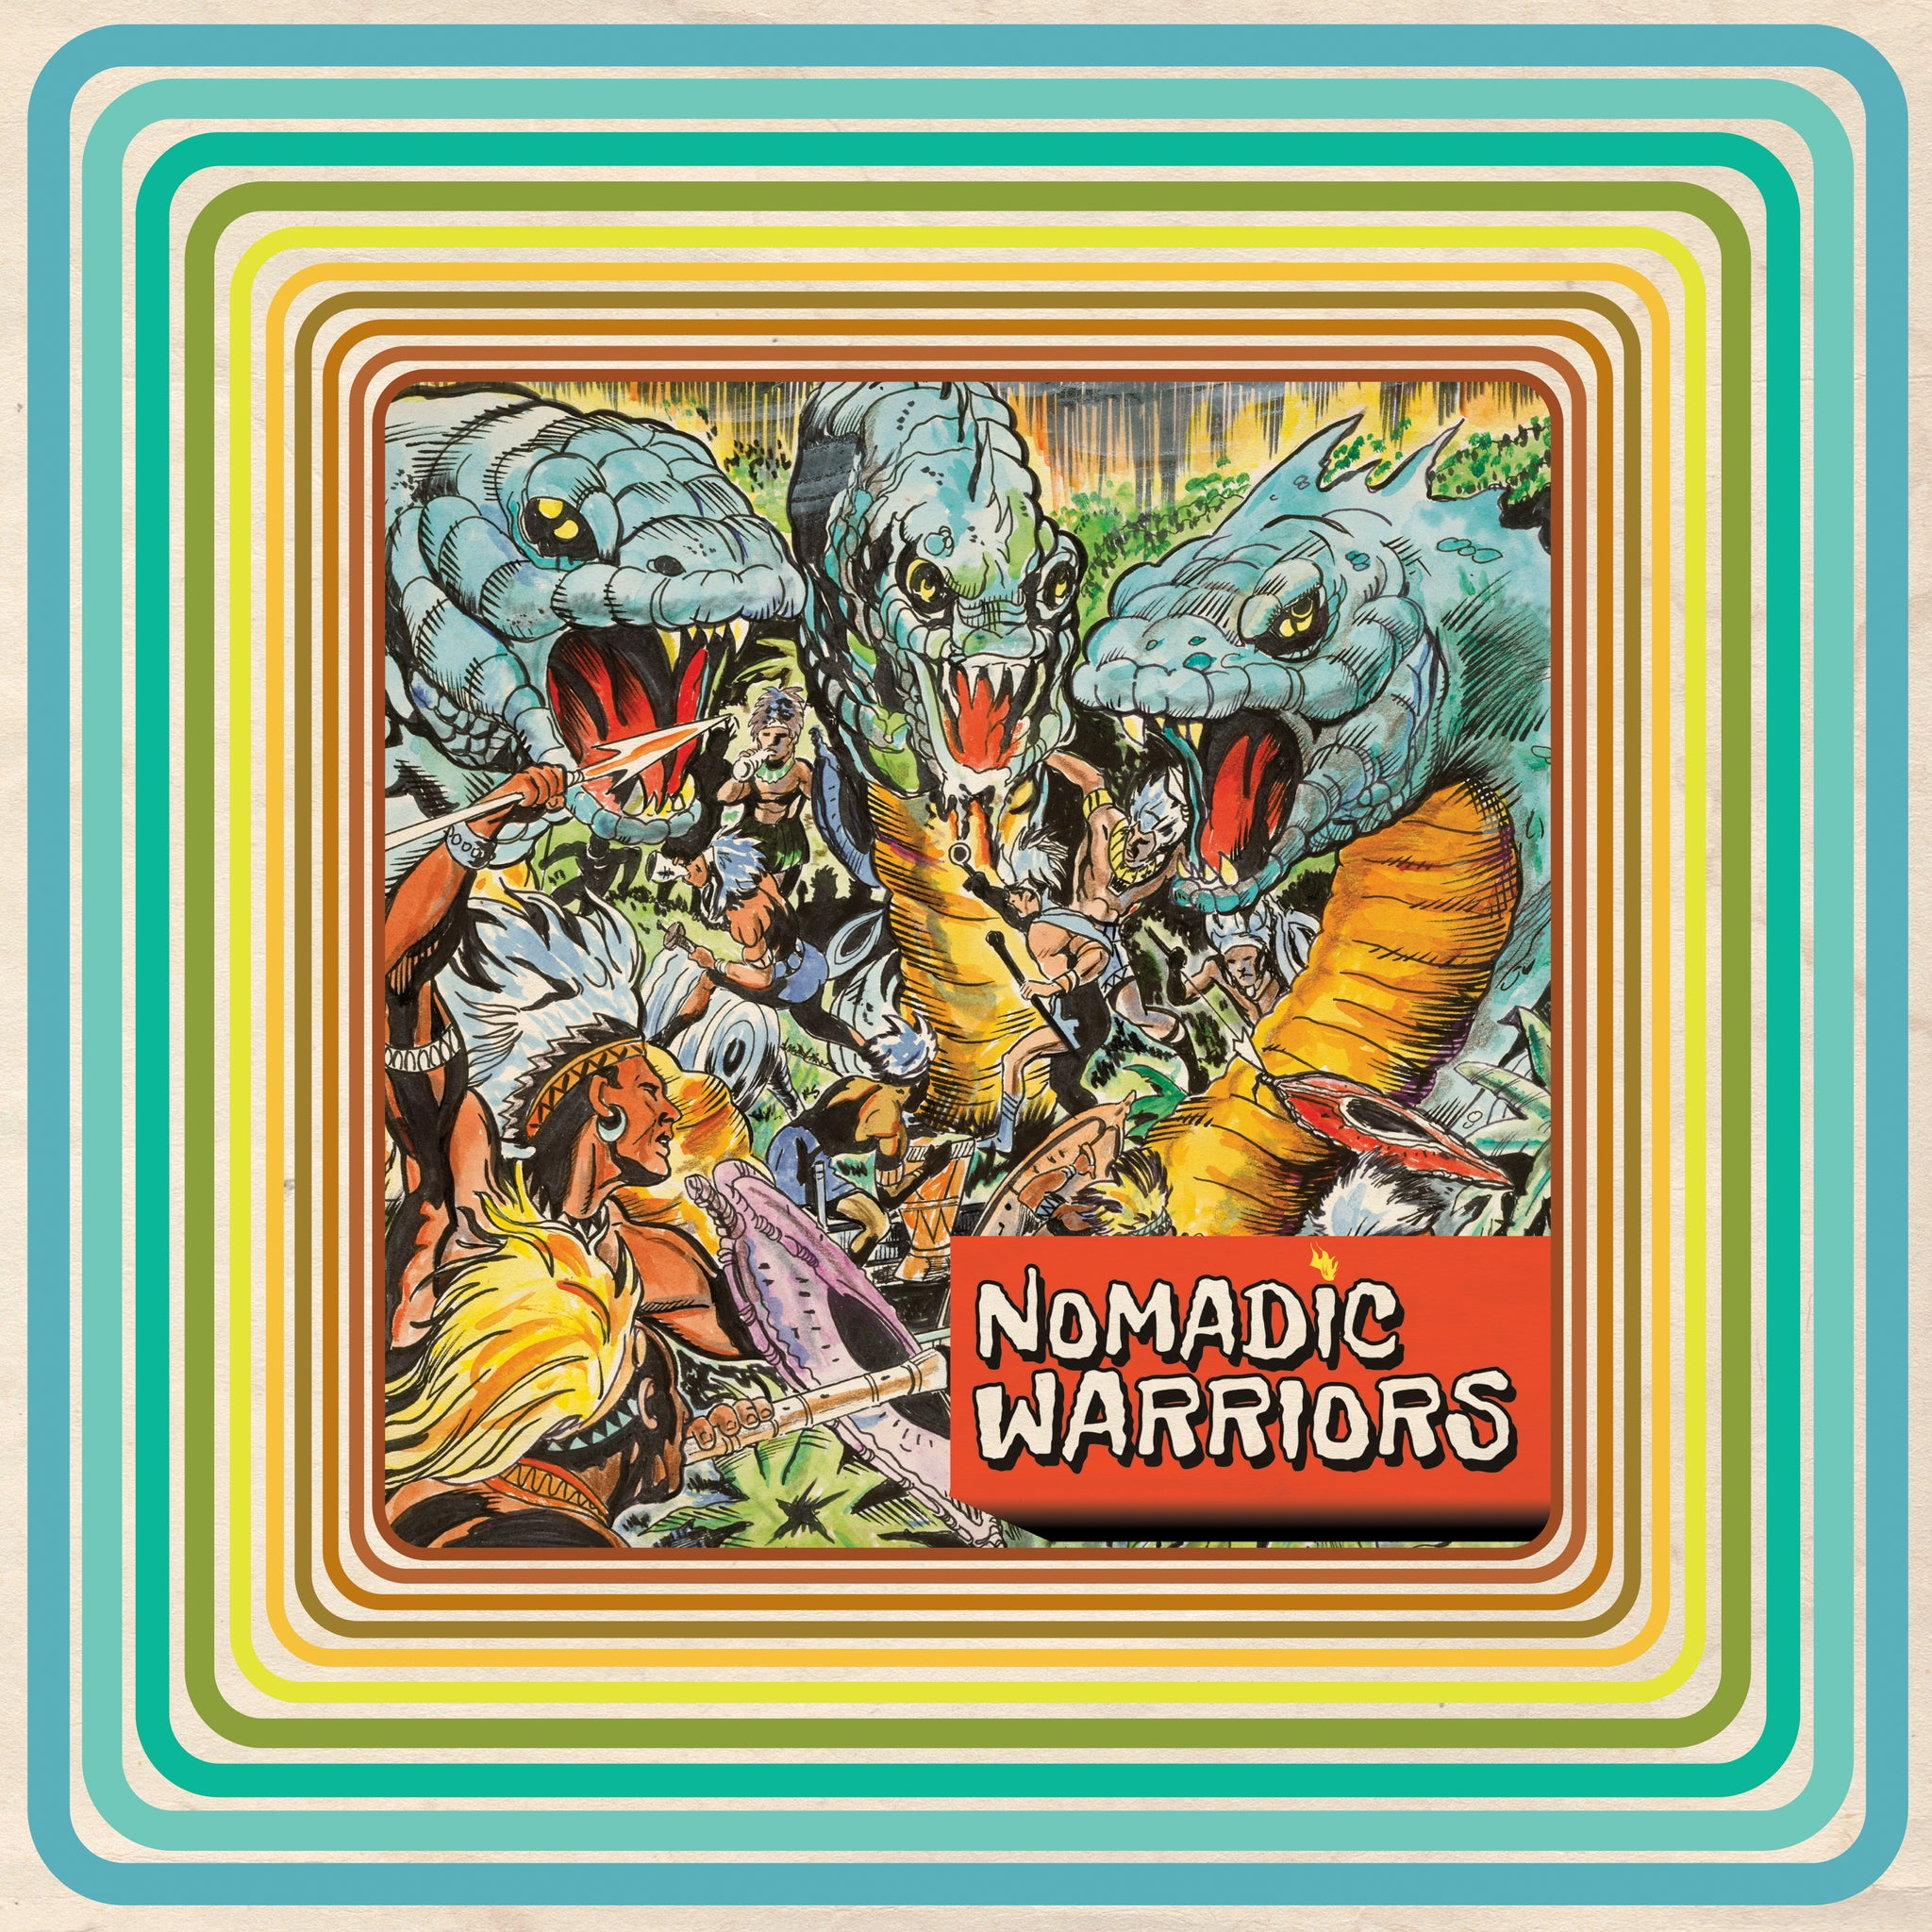 Nomadic Warriors (vinyl LP)